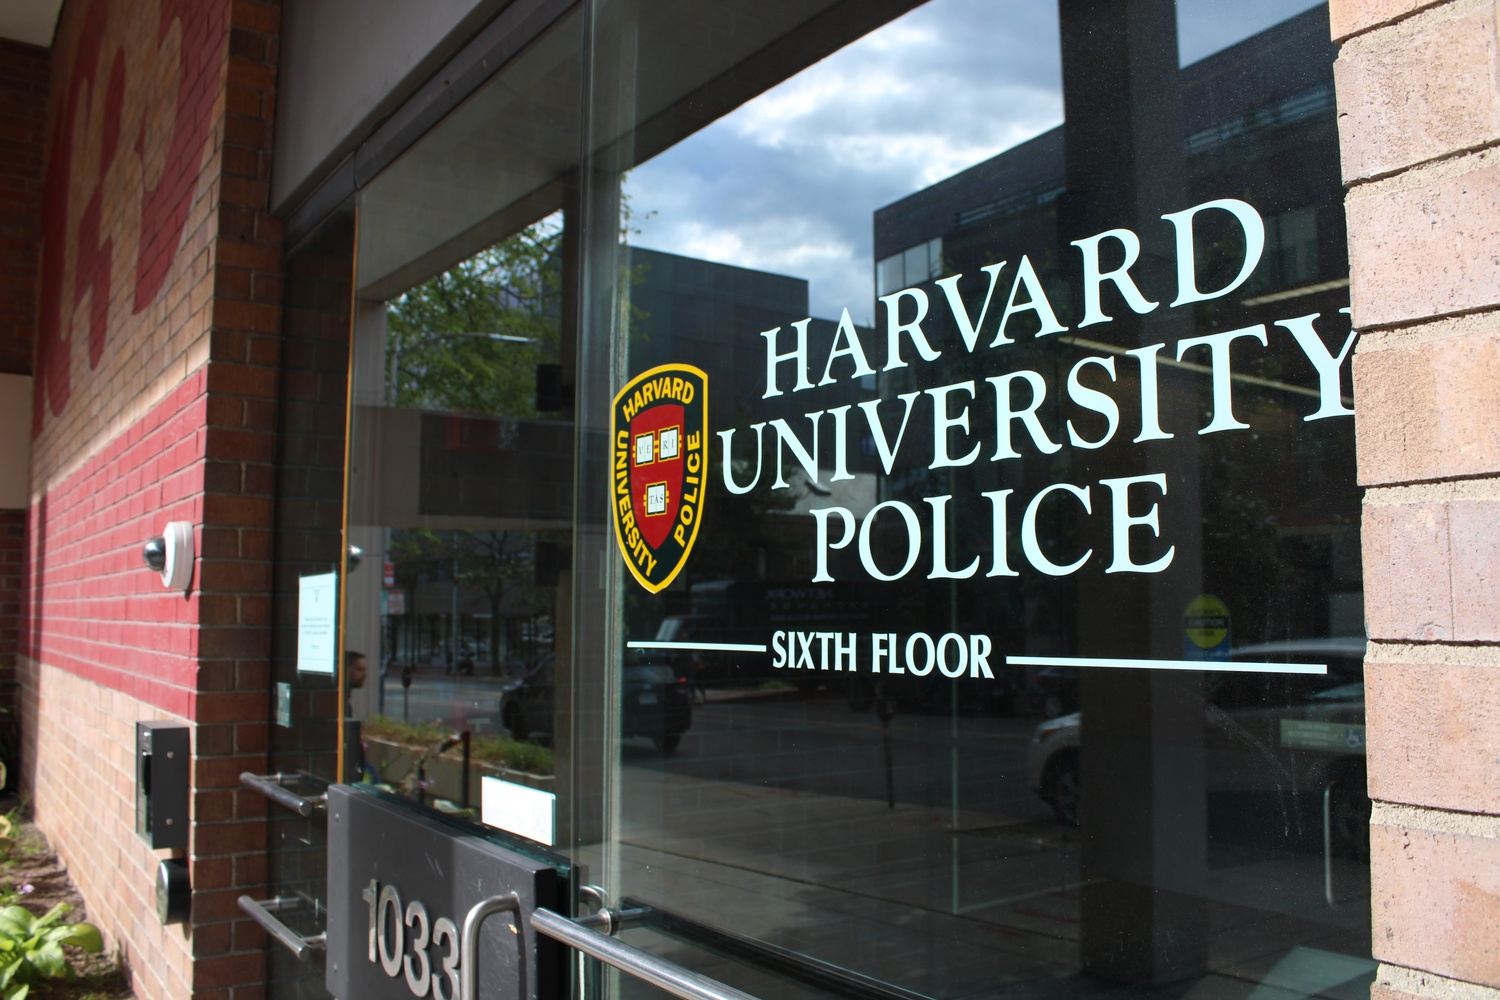 The Harvard University Police Department maintains offices on Massachusetts Avenue.